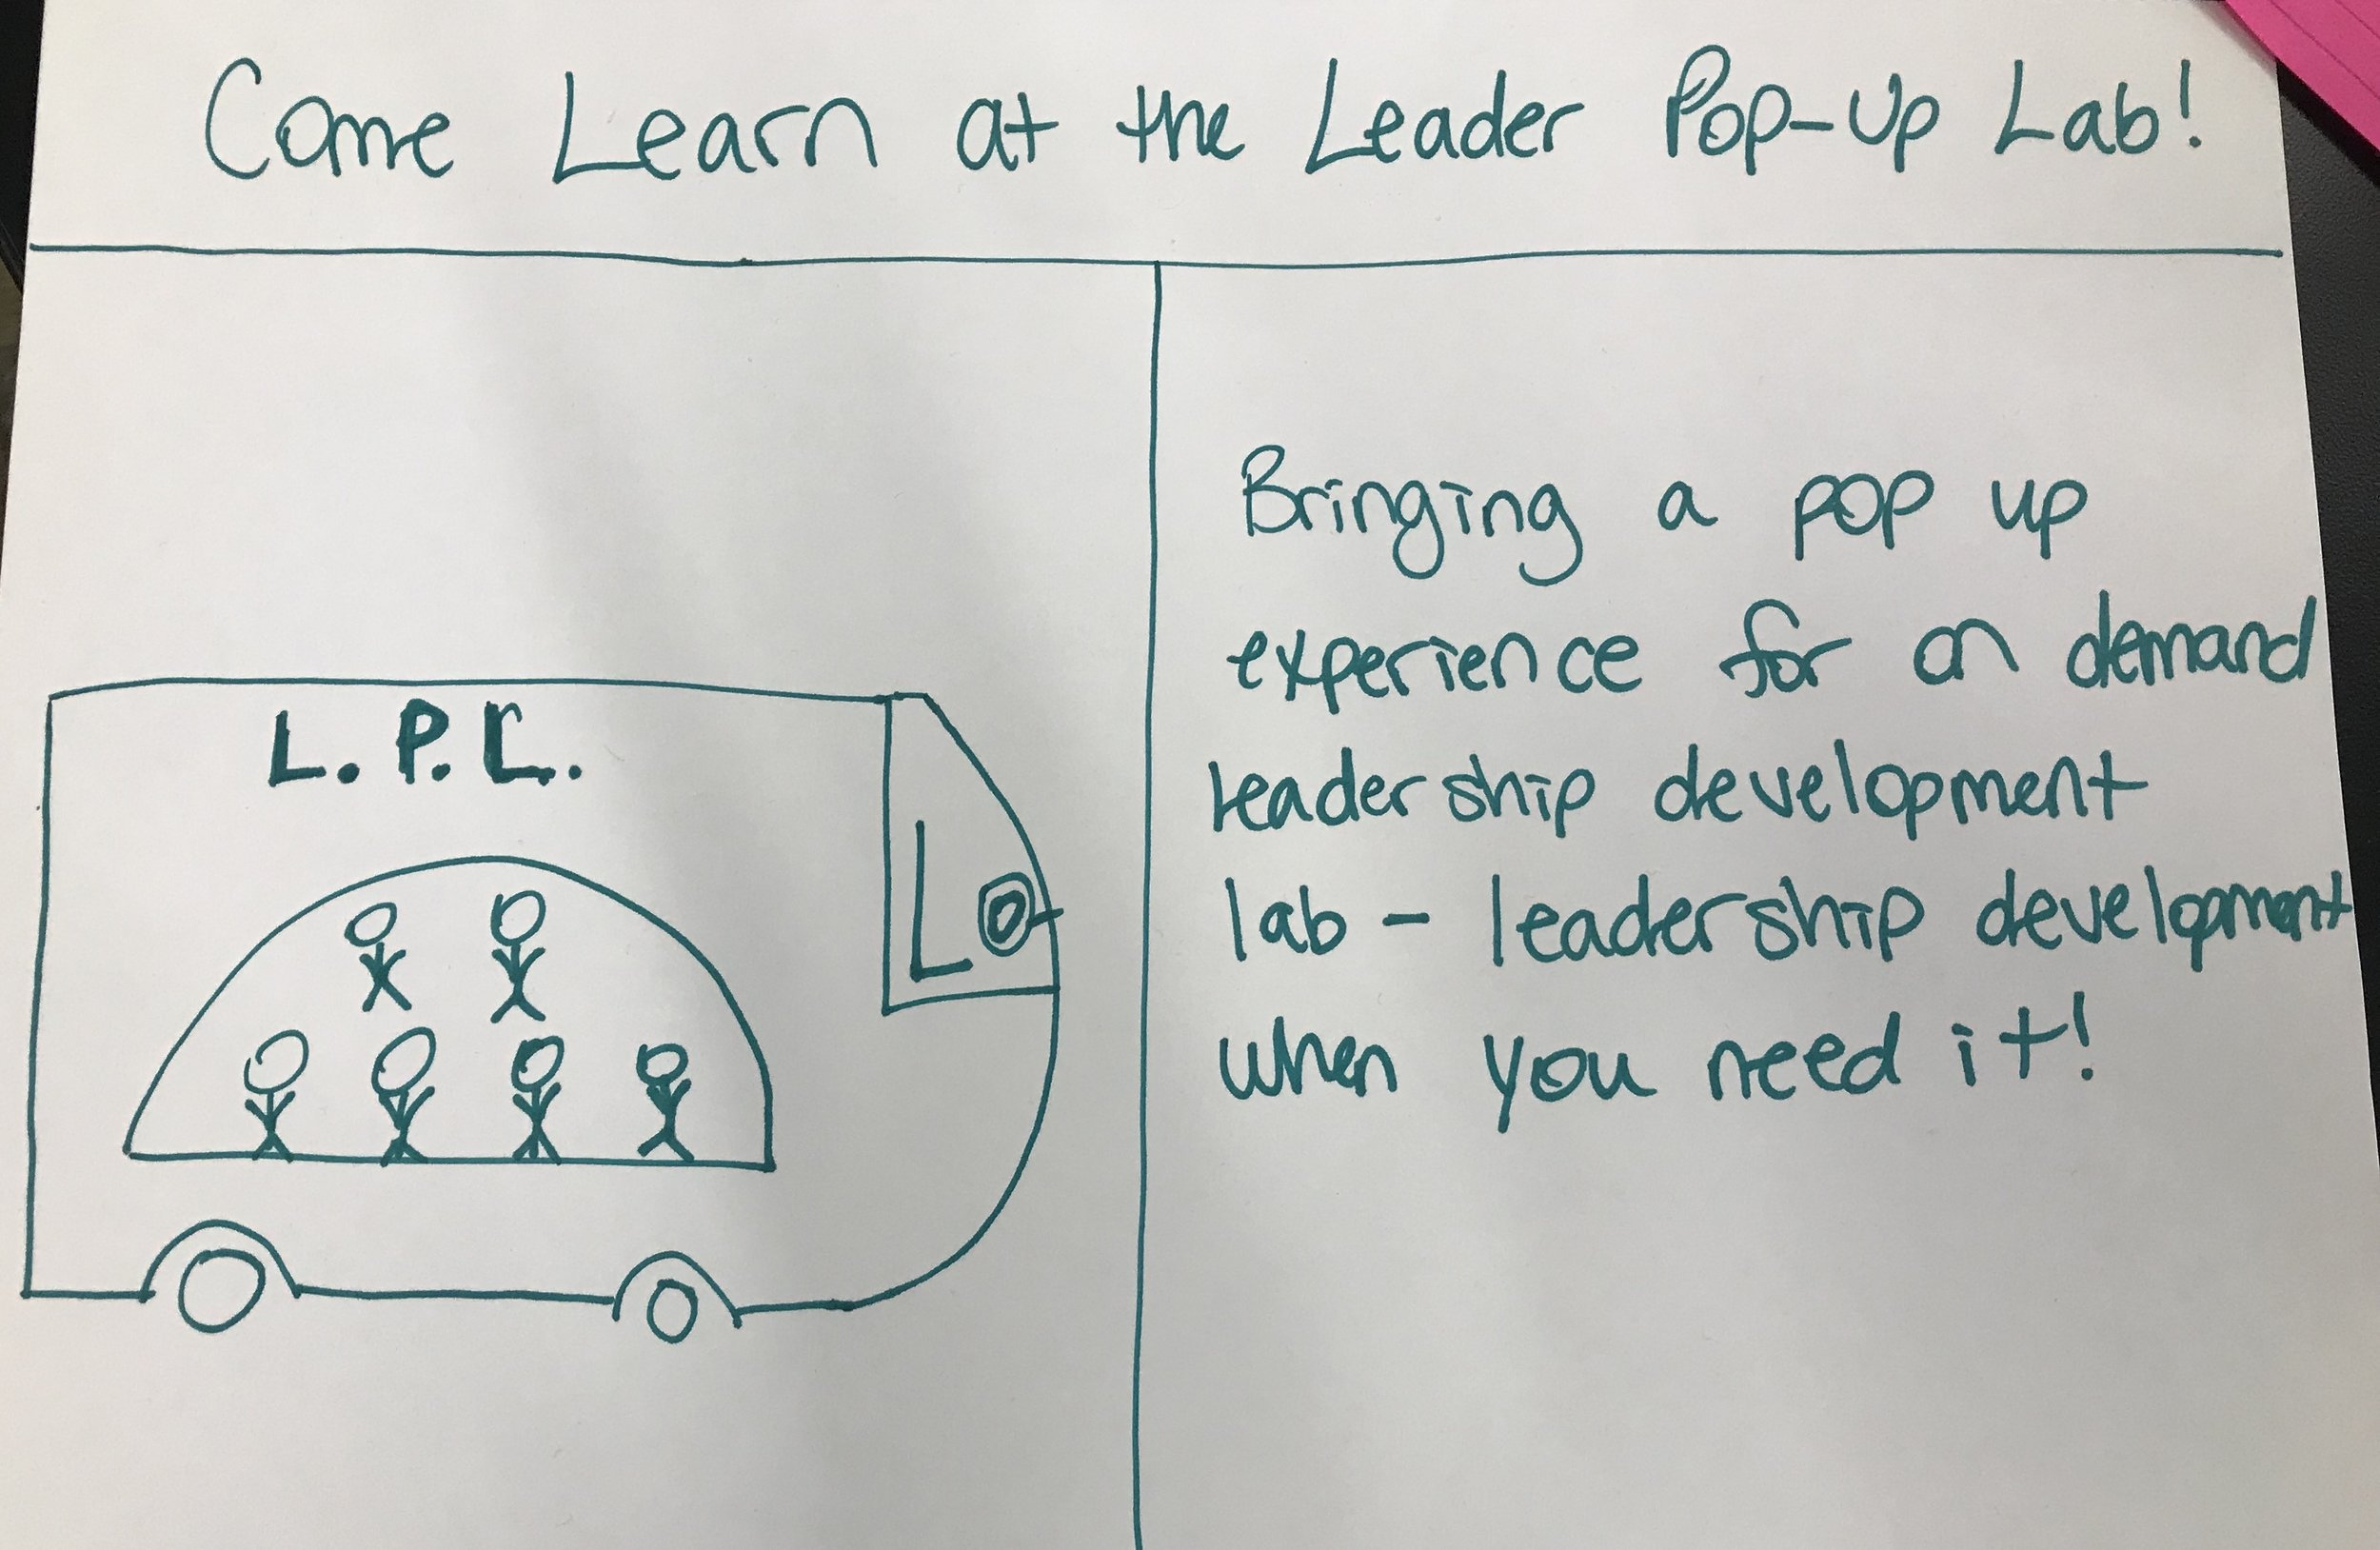 Come Learn At The Leader Pop-Up Lab!